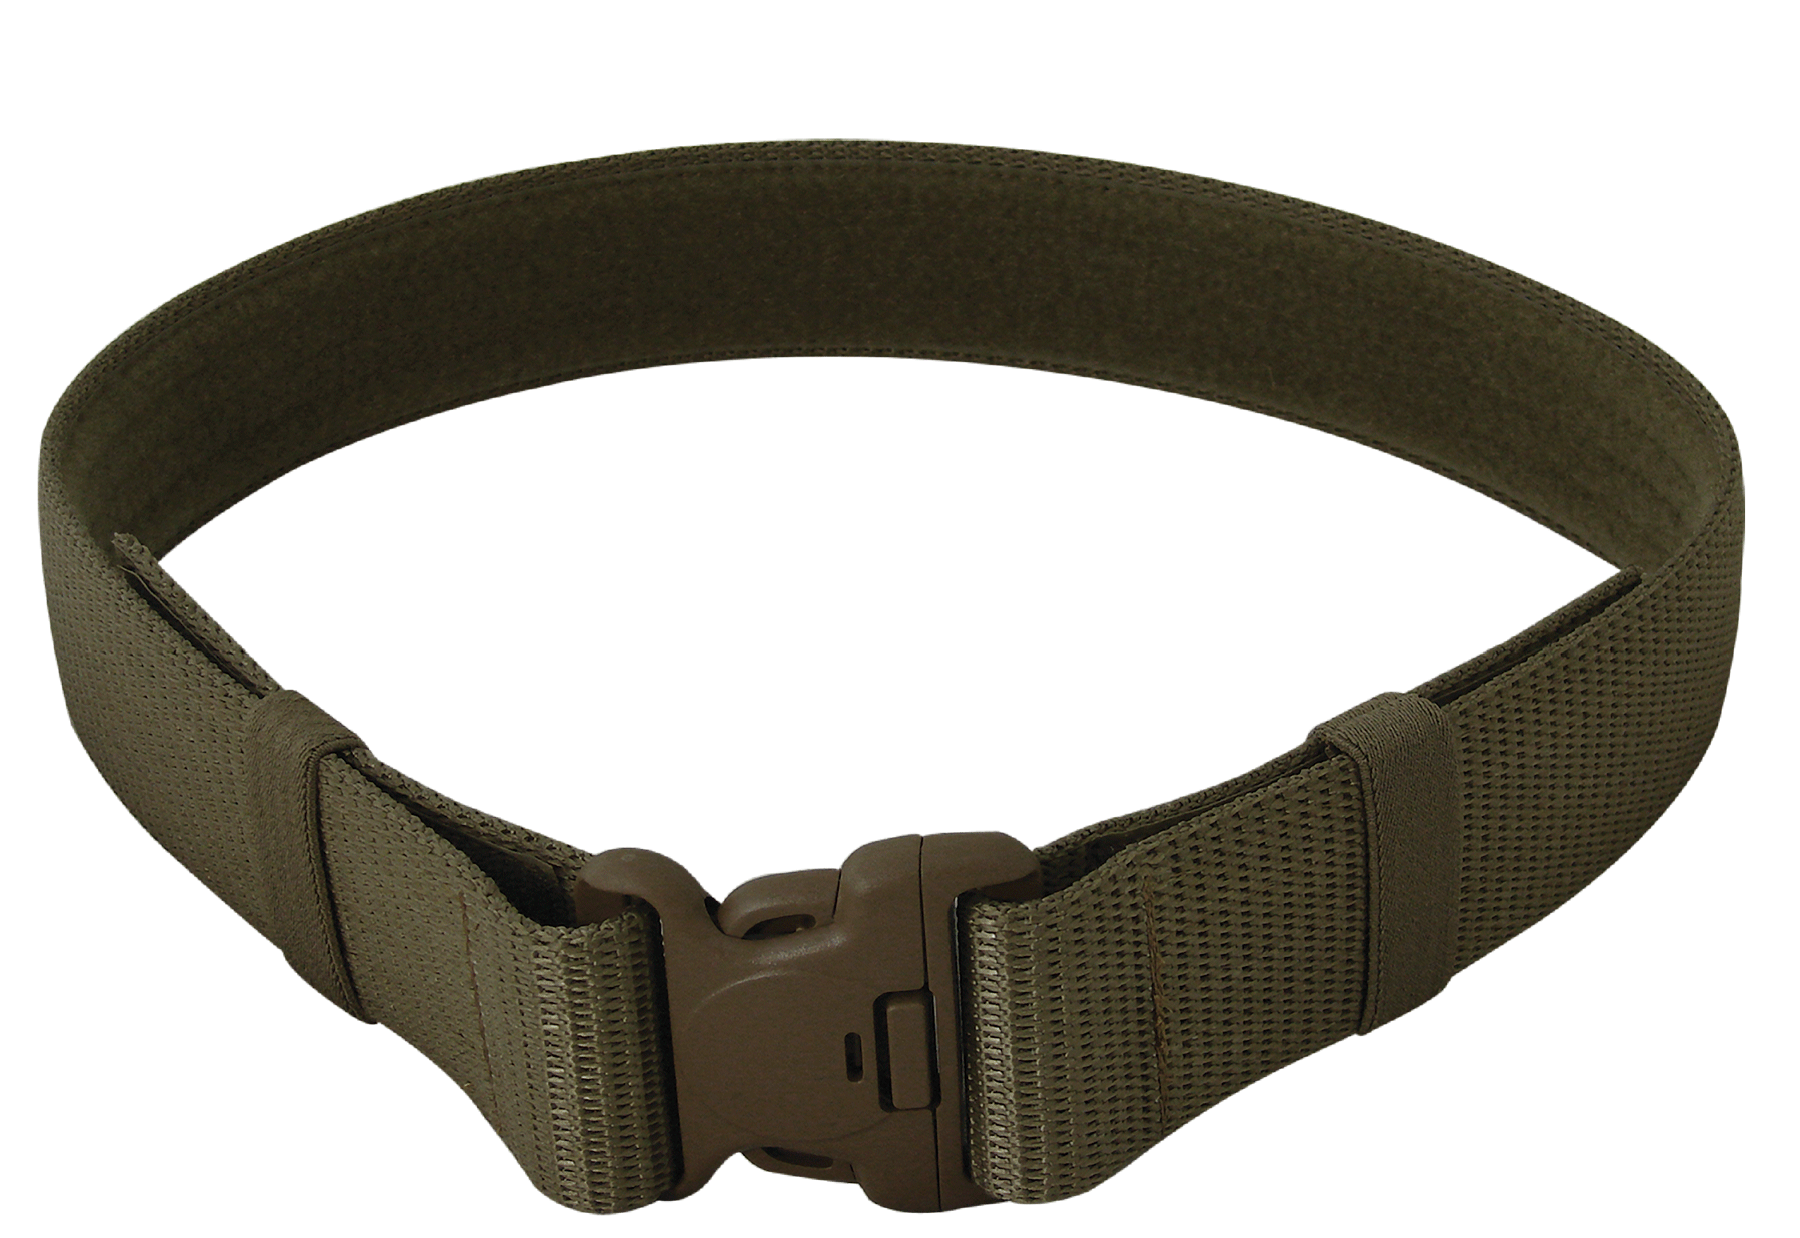 Tacprogear BTMWB1 Military Style Web Belt Up to 43